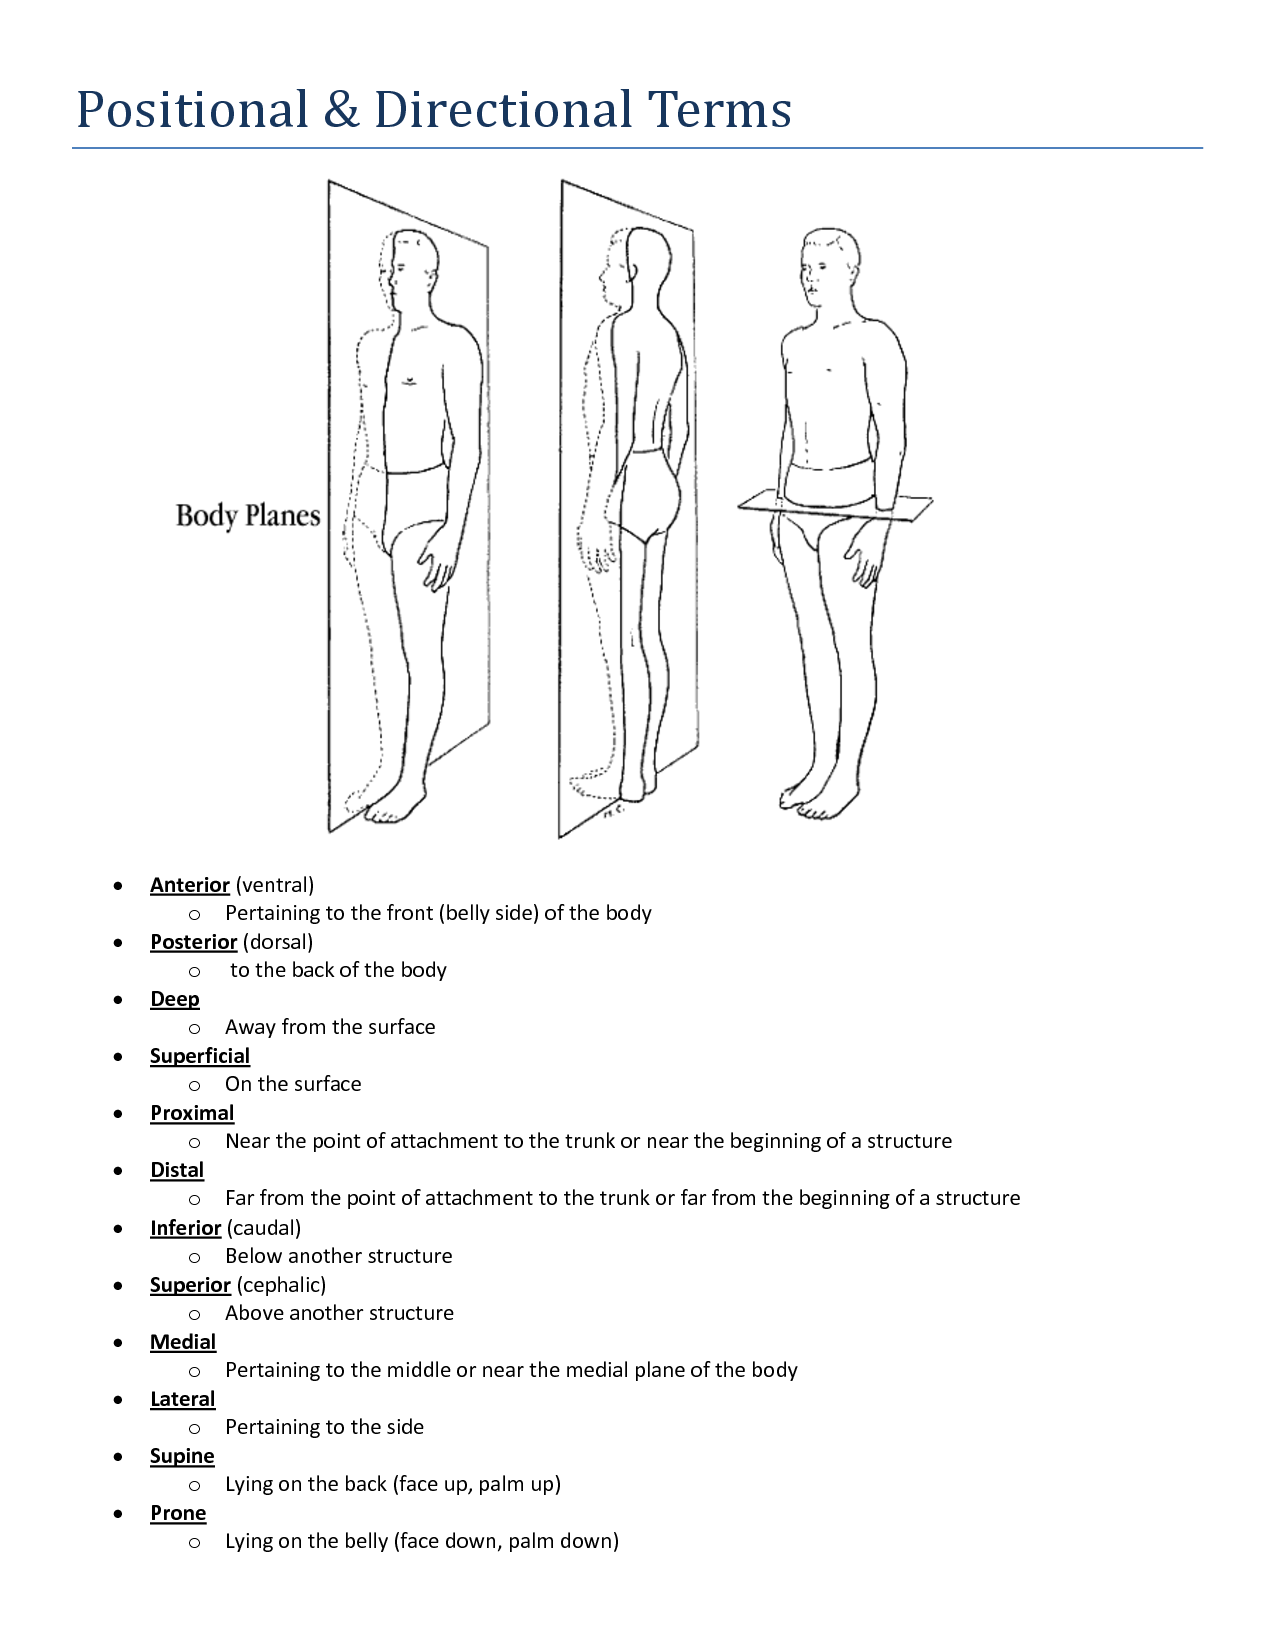 worksheet The Human Body An Orientation Worksheet Answers directional terms human body anatomy pinterest and body